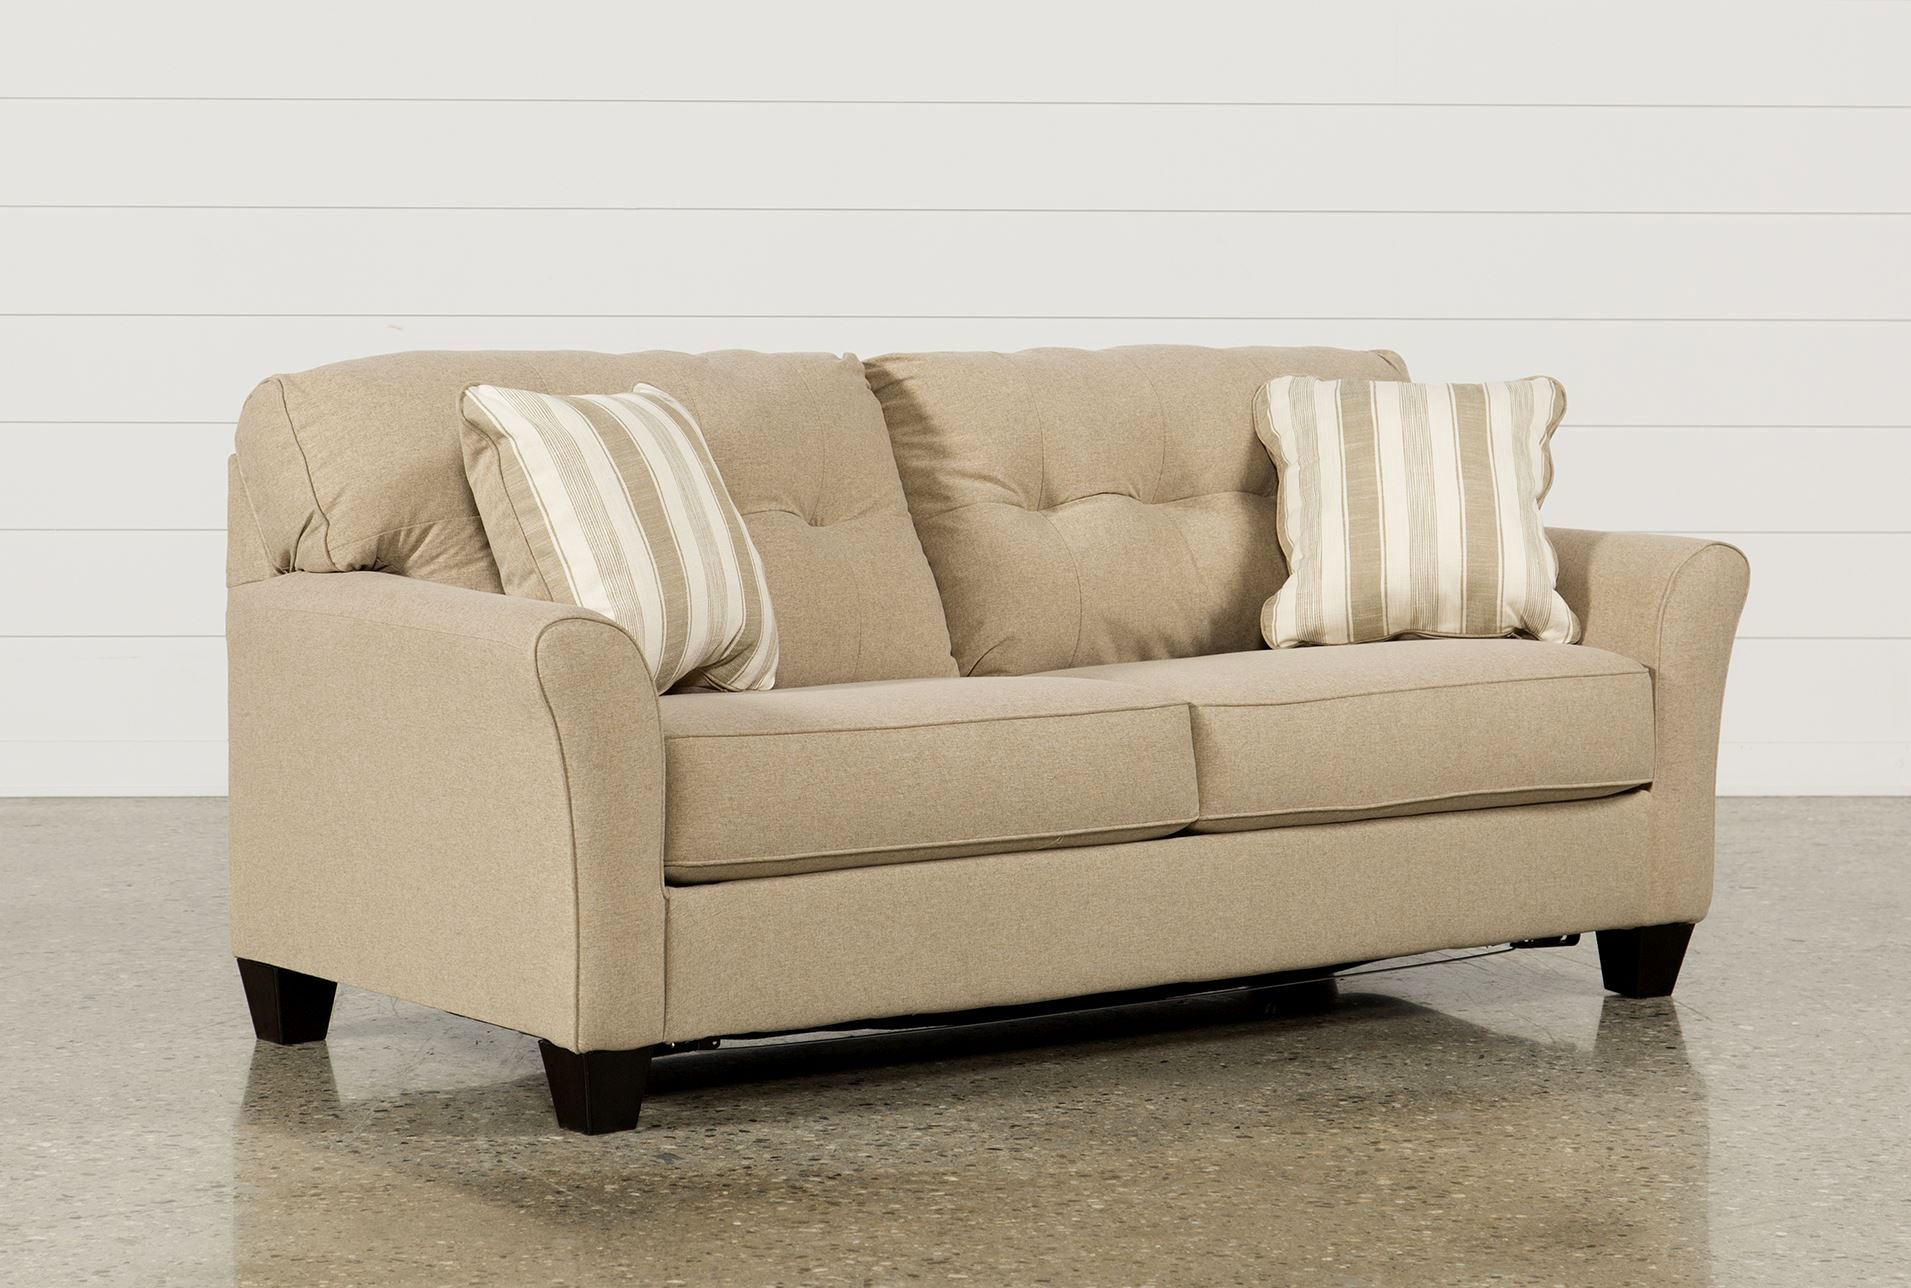 lovely twin size sleeper sofa picture-Finest Twin Size Sleeper sofa Picture